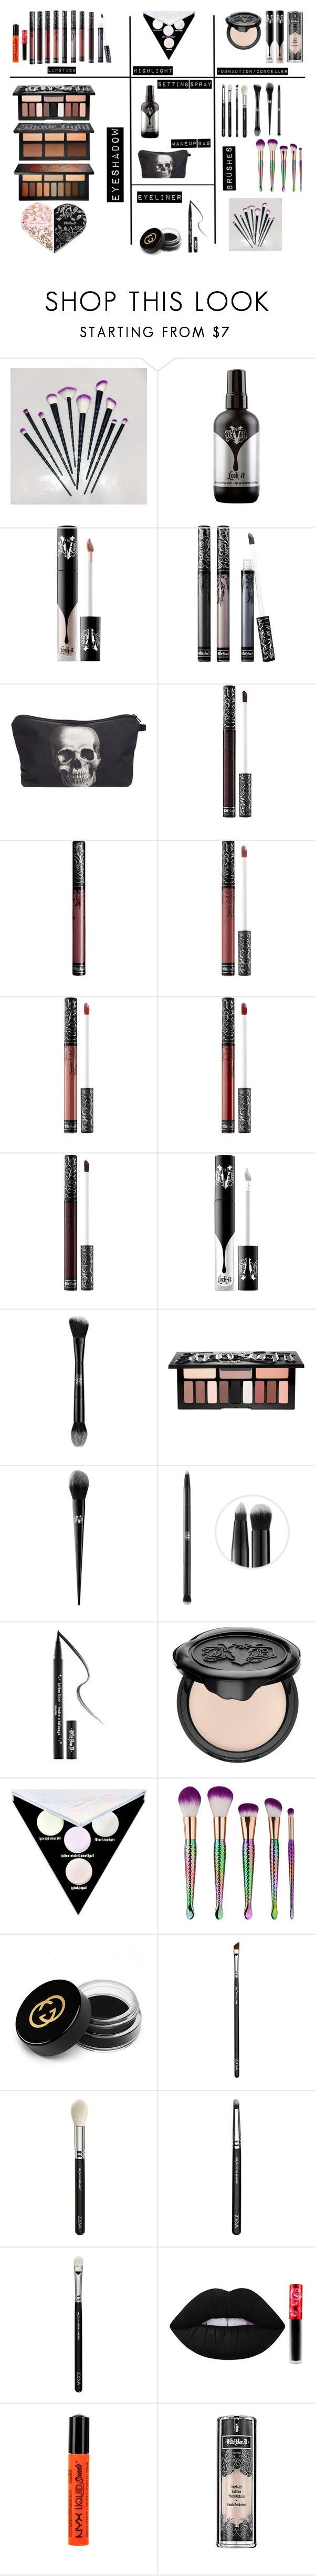 """""""My Makeup"""" by budlebug ❤ liked on Polyvore featuring Kat Von D, My Makeup Brush Set, Gucci, ZOEVA, Lime Crime and NYX"""